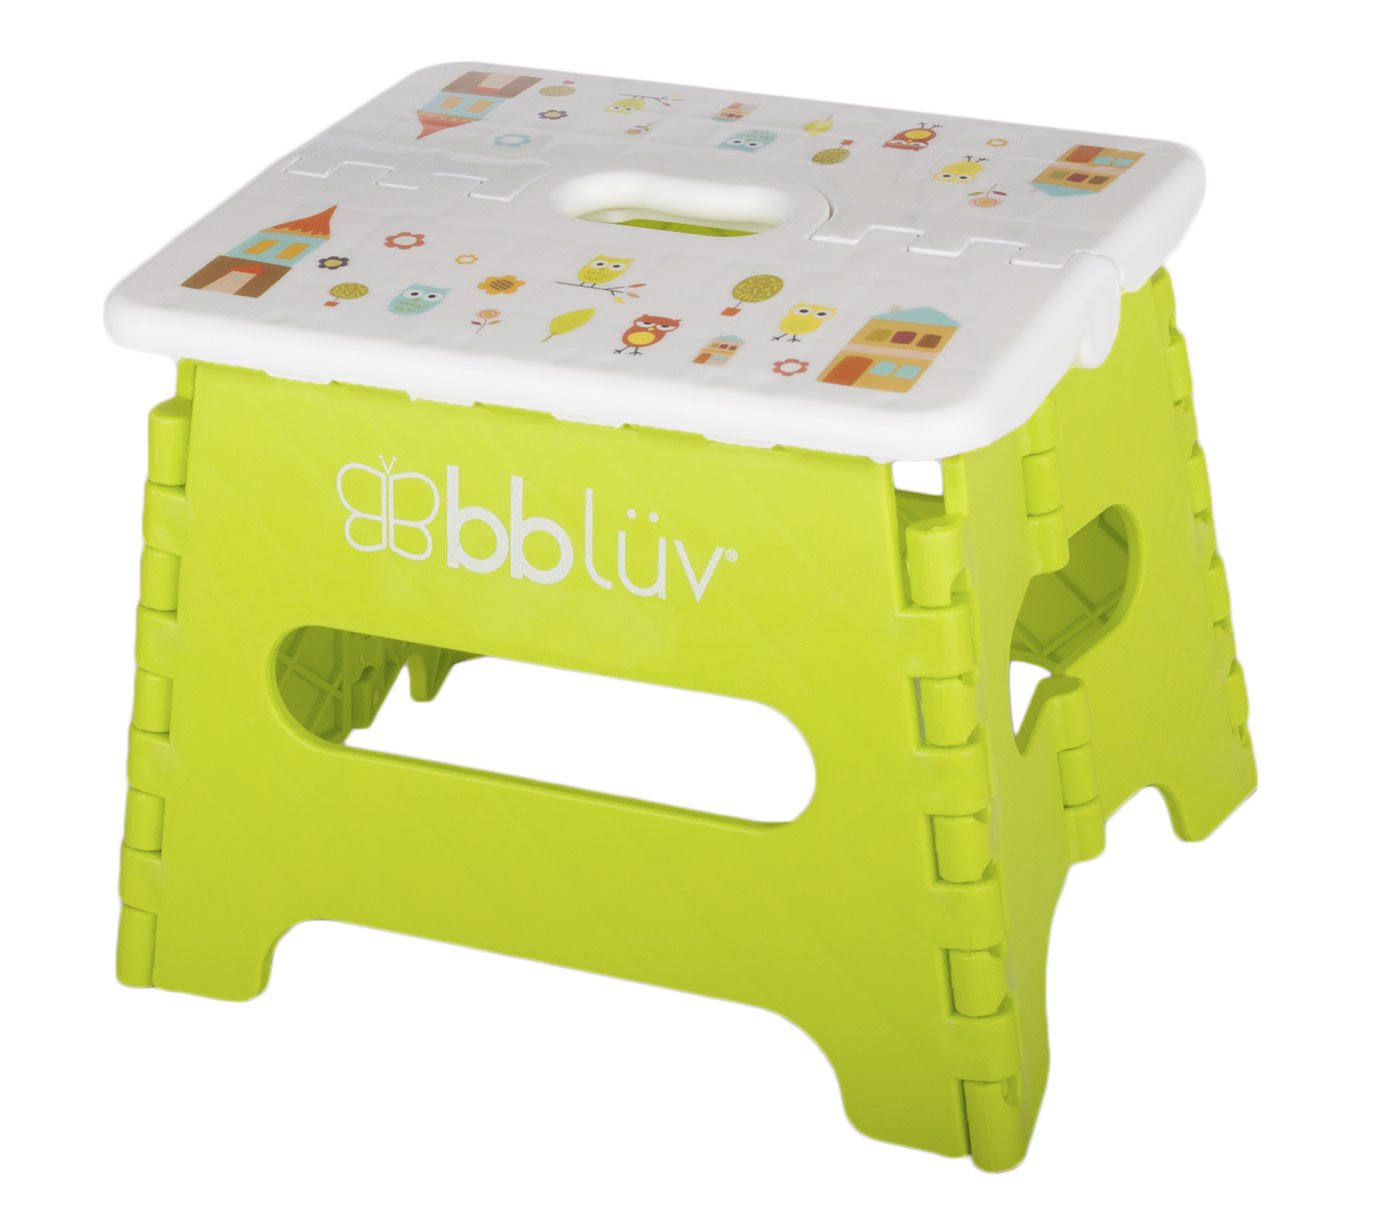 bblüv - Stëp - Foldable Step Stool - Safe, Compact and Easy to Clean (Pink) bblüv Group B0114-P